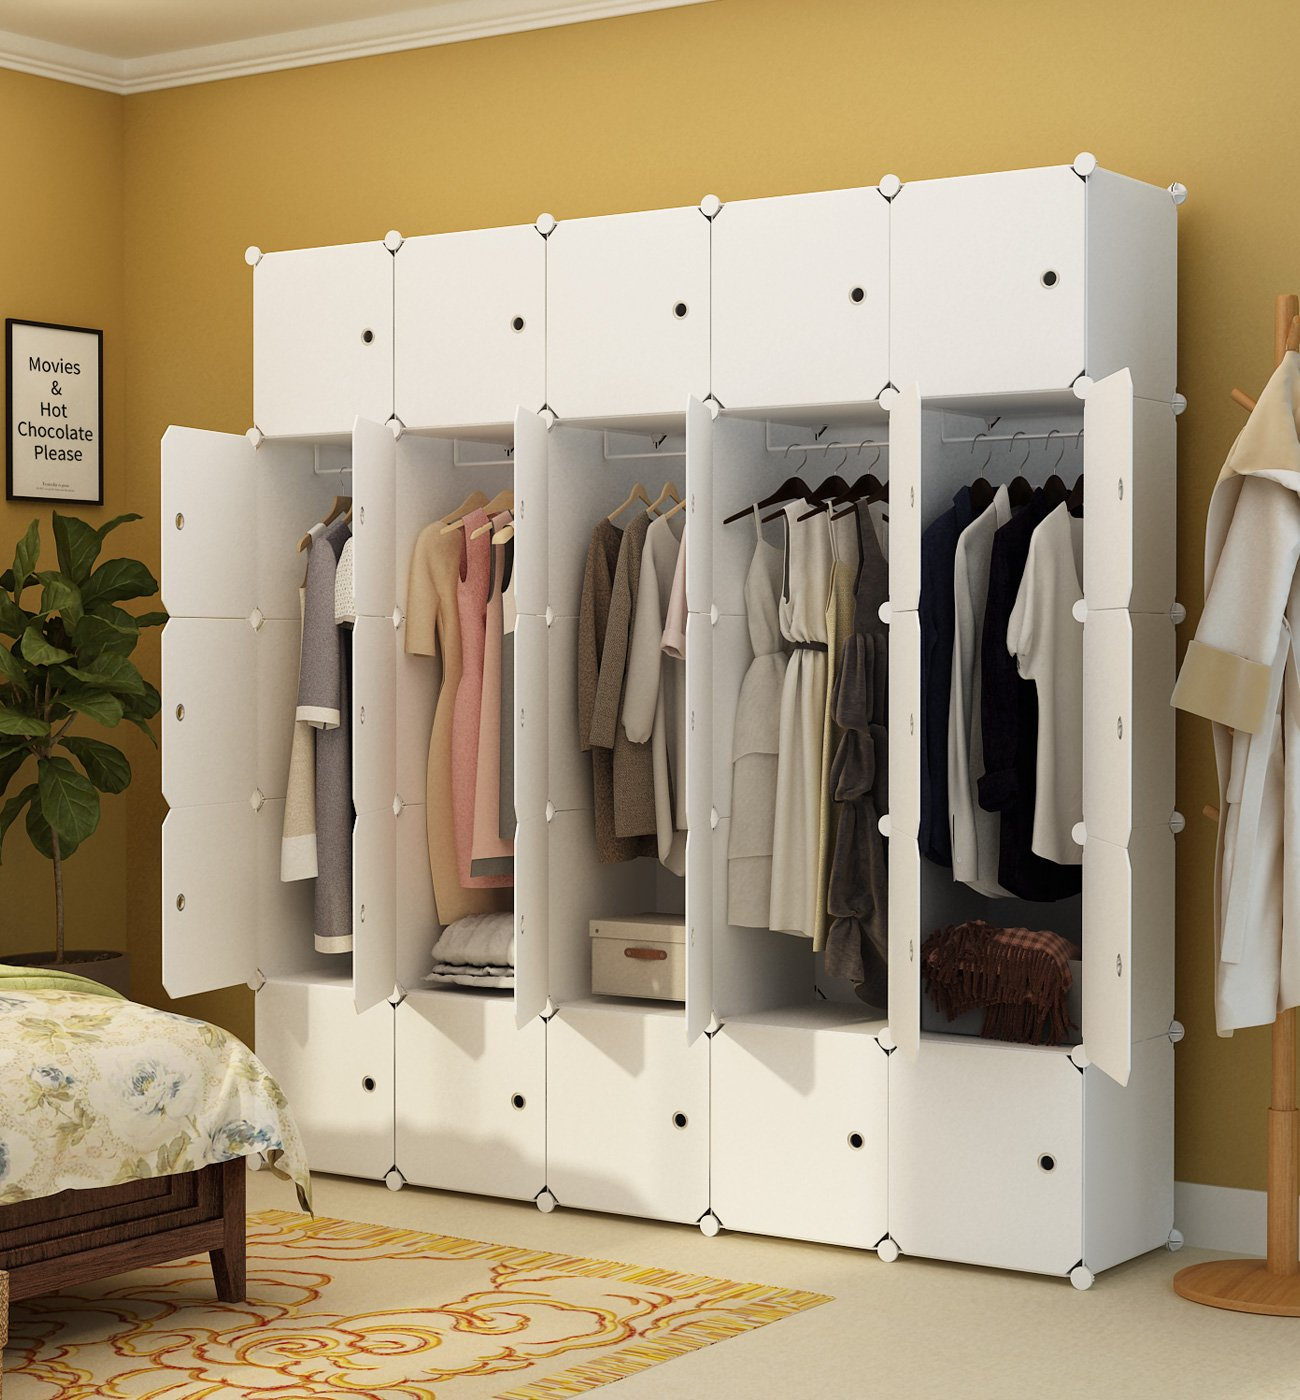 KOUSI Portable Clothes Closet Wardrobe Bedroom Armoire Storage Organizer with Doors, Capacious & Sturdy. 10 Cubes+5 Hanging Section, White